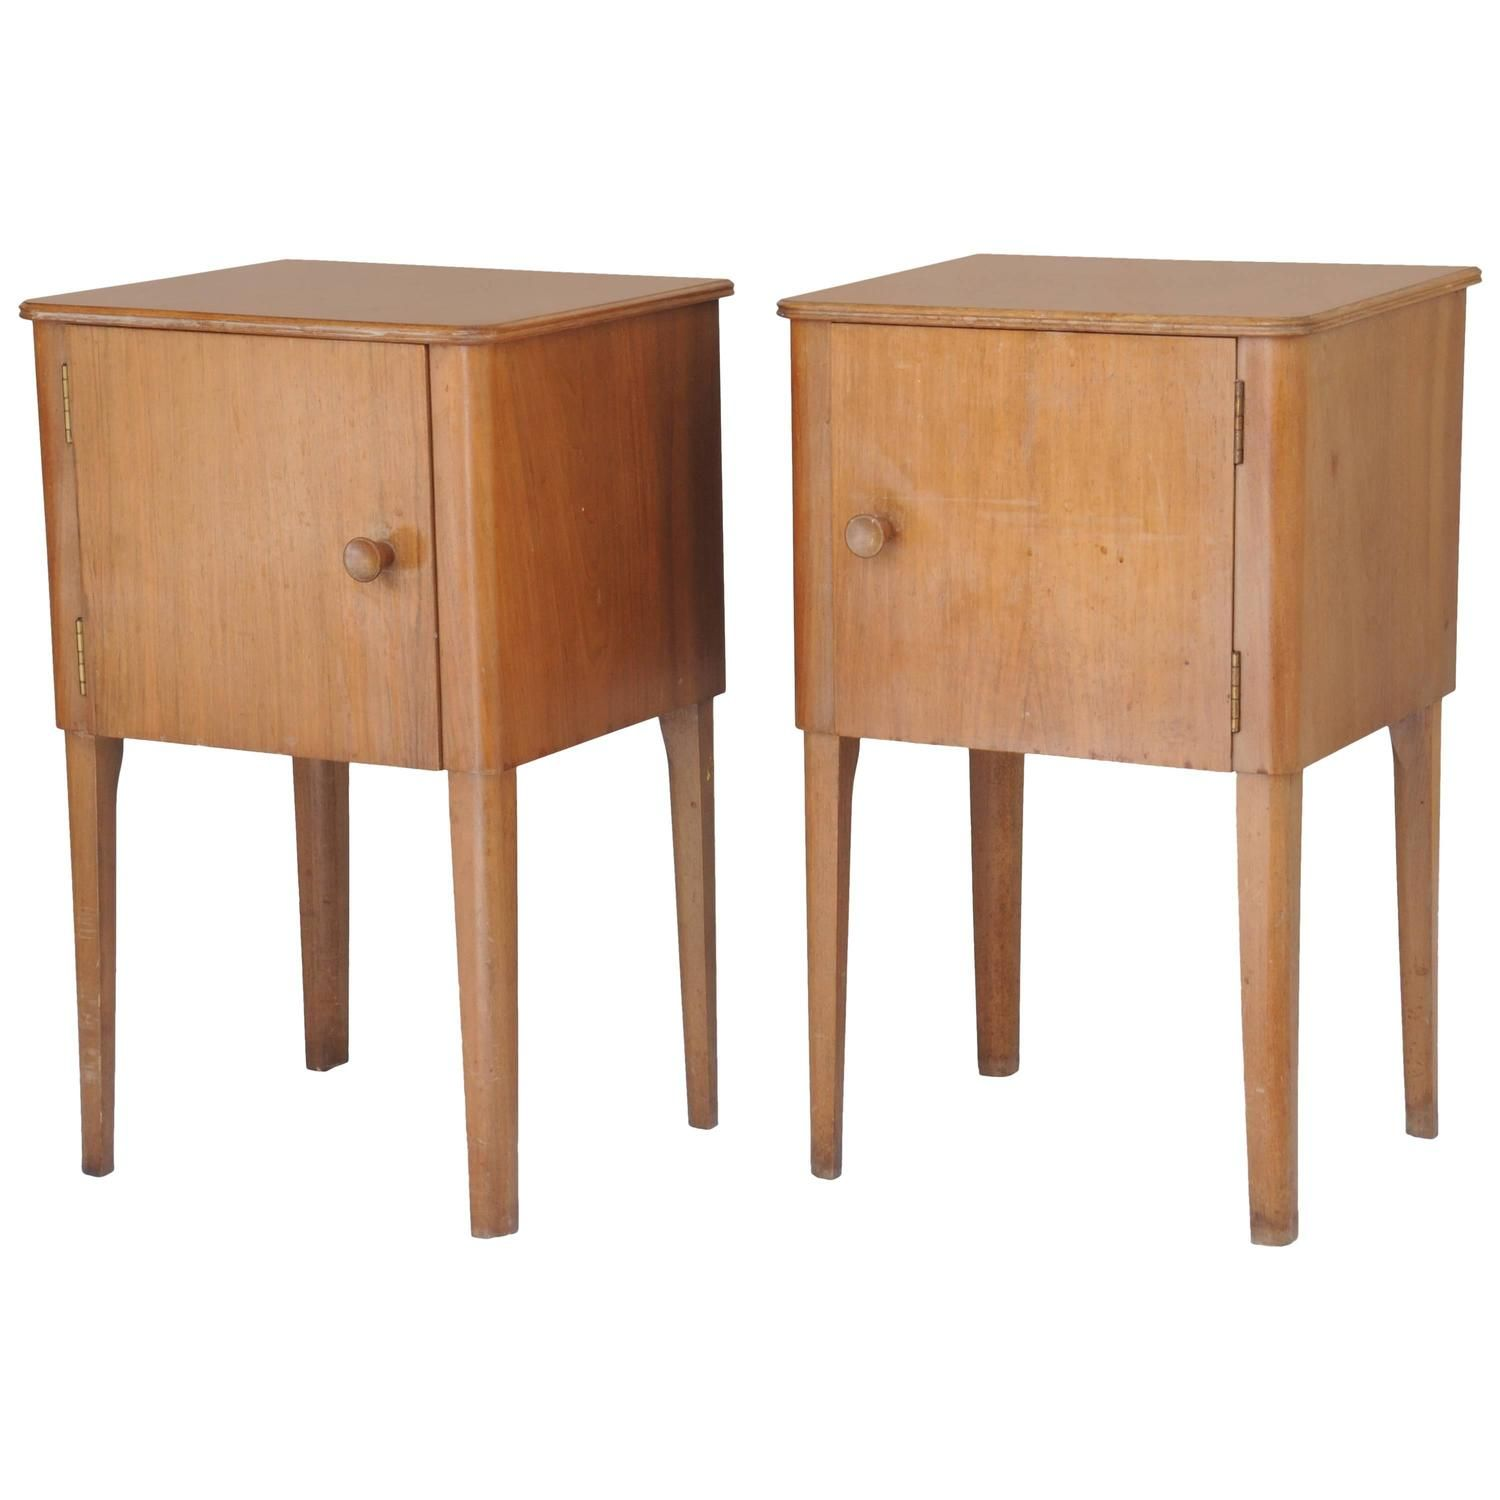 Pair Of Mid Century Modern Nightstands Designed By Gordon Russell